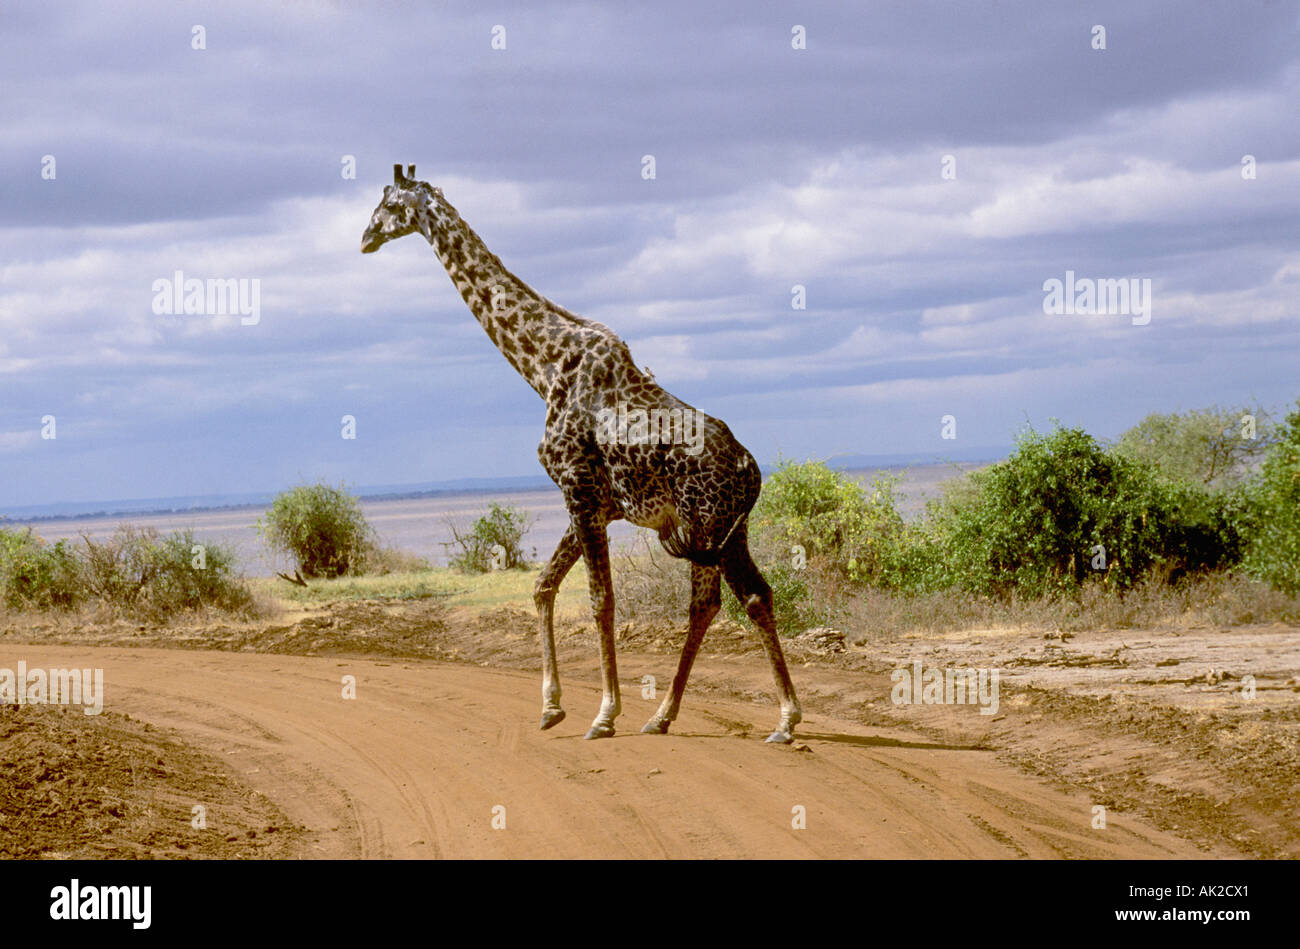 Maasai Giraffe in Lake Manyara National Park, Tanzania Stock Photo